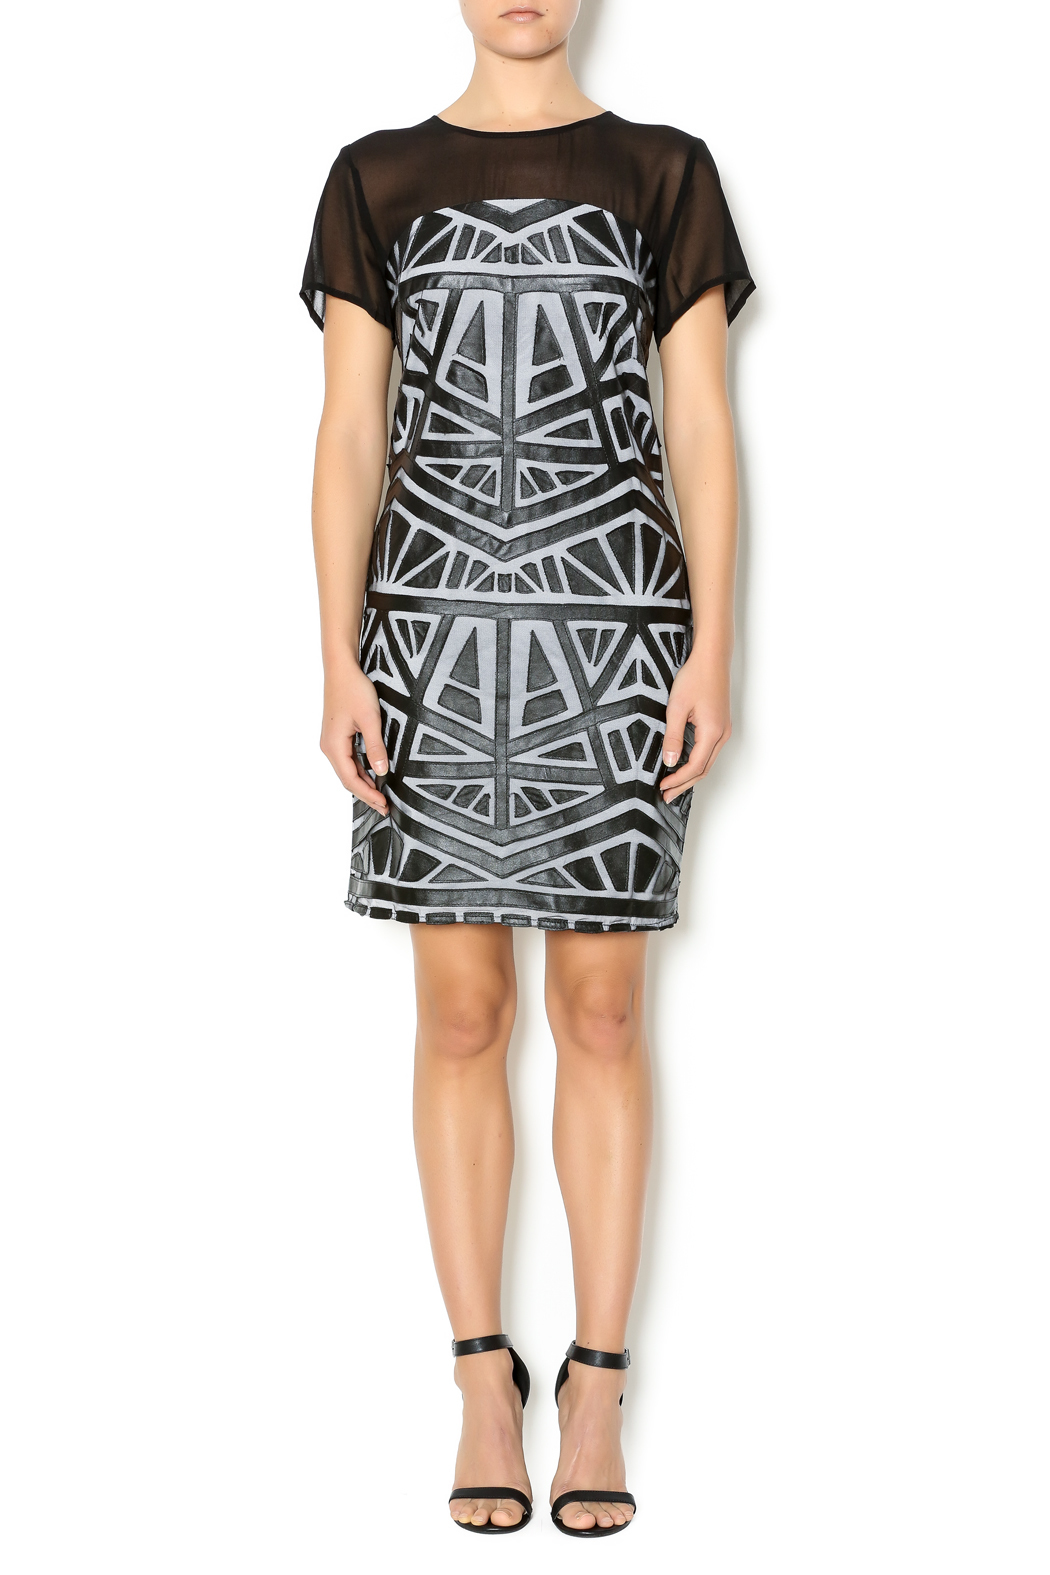 Lumiere Black White Midi Dress - Front Full Image